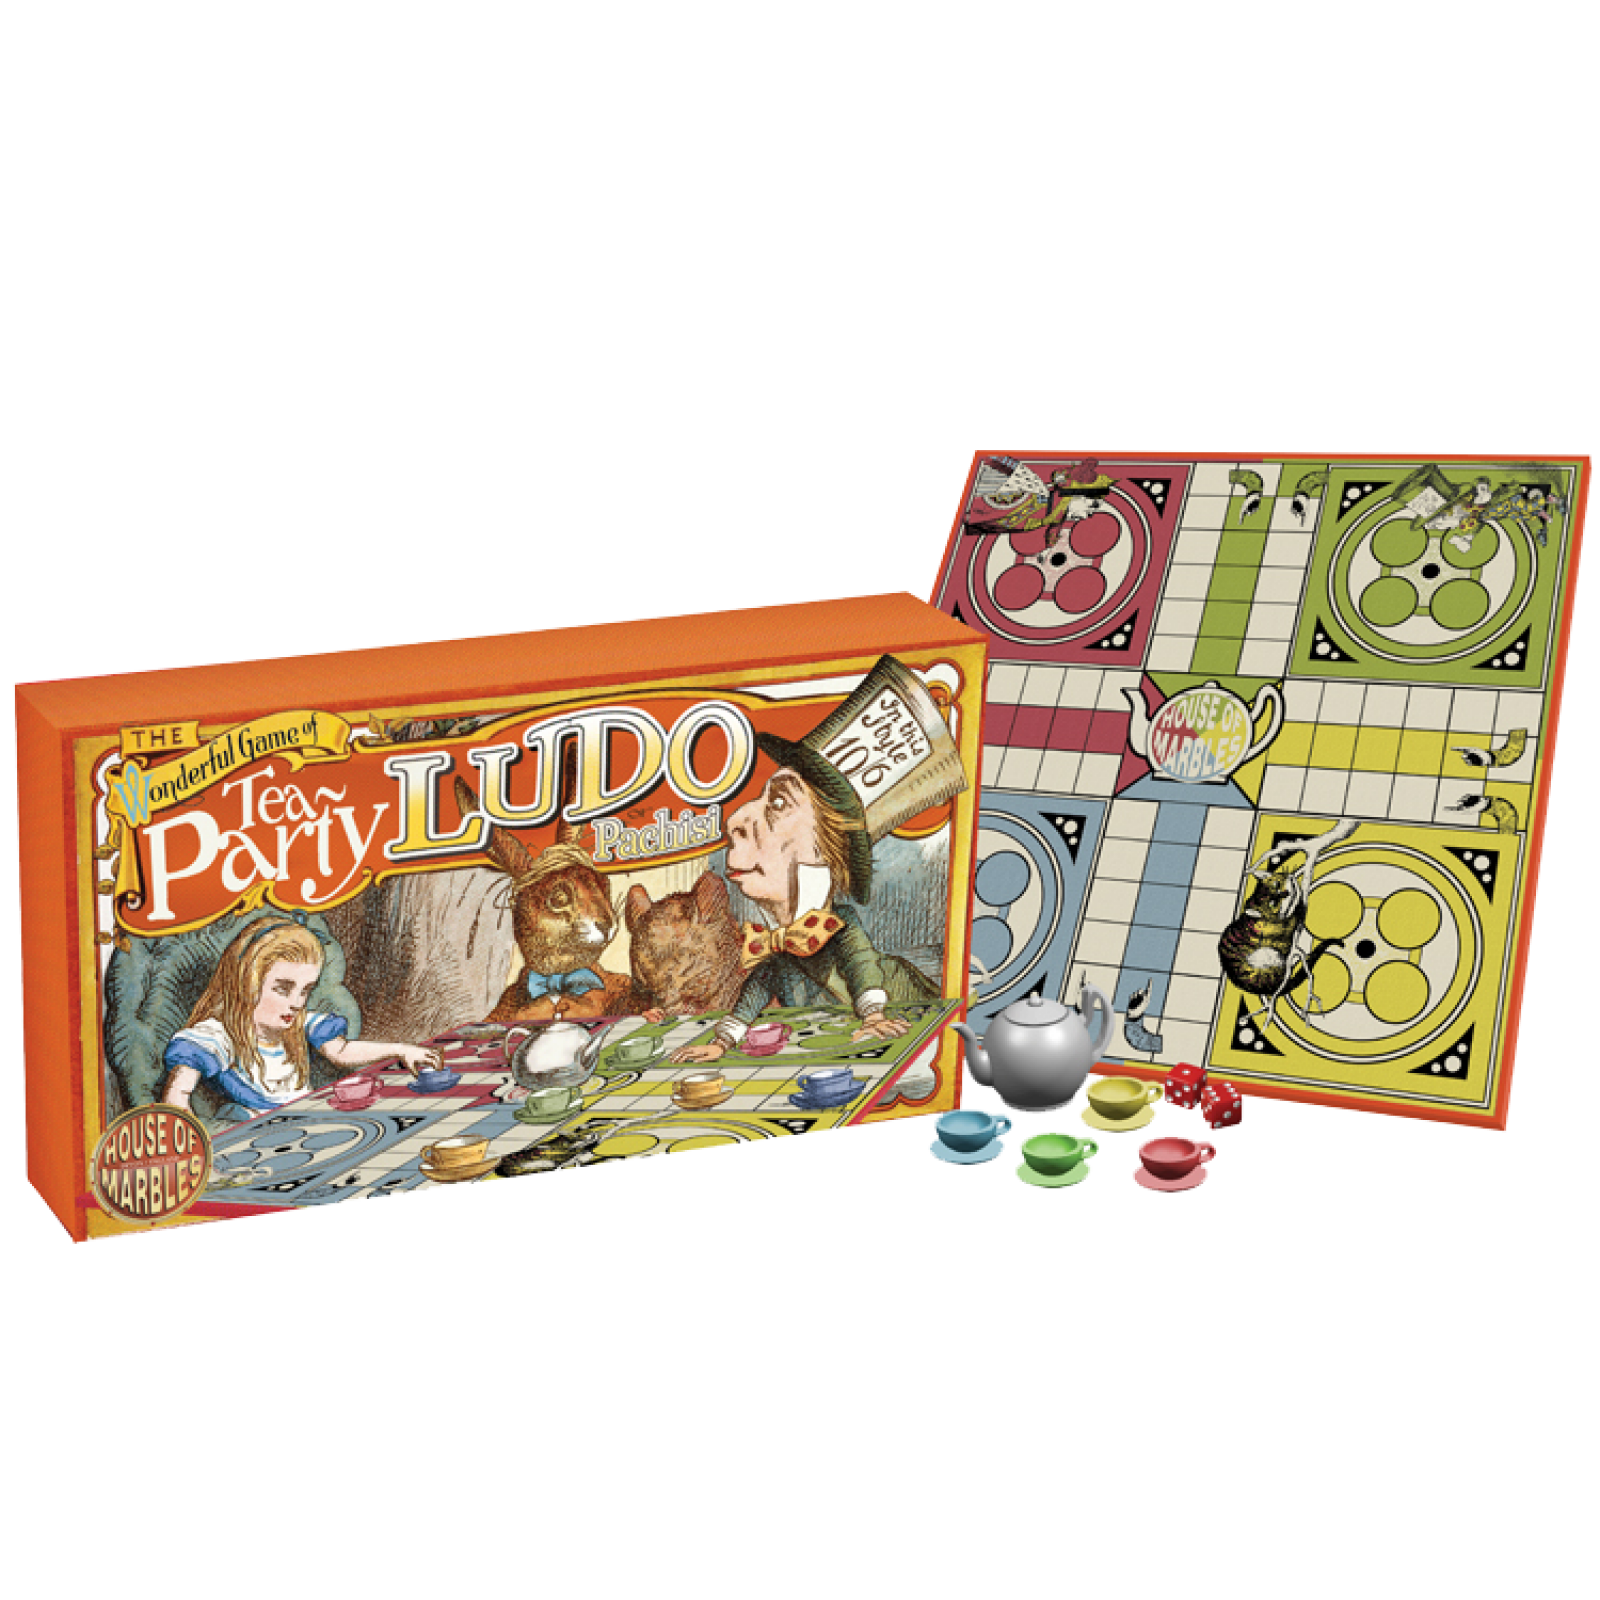 Tea Party Ludo Board Game thumbnails